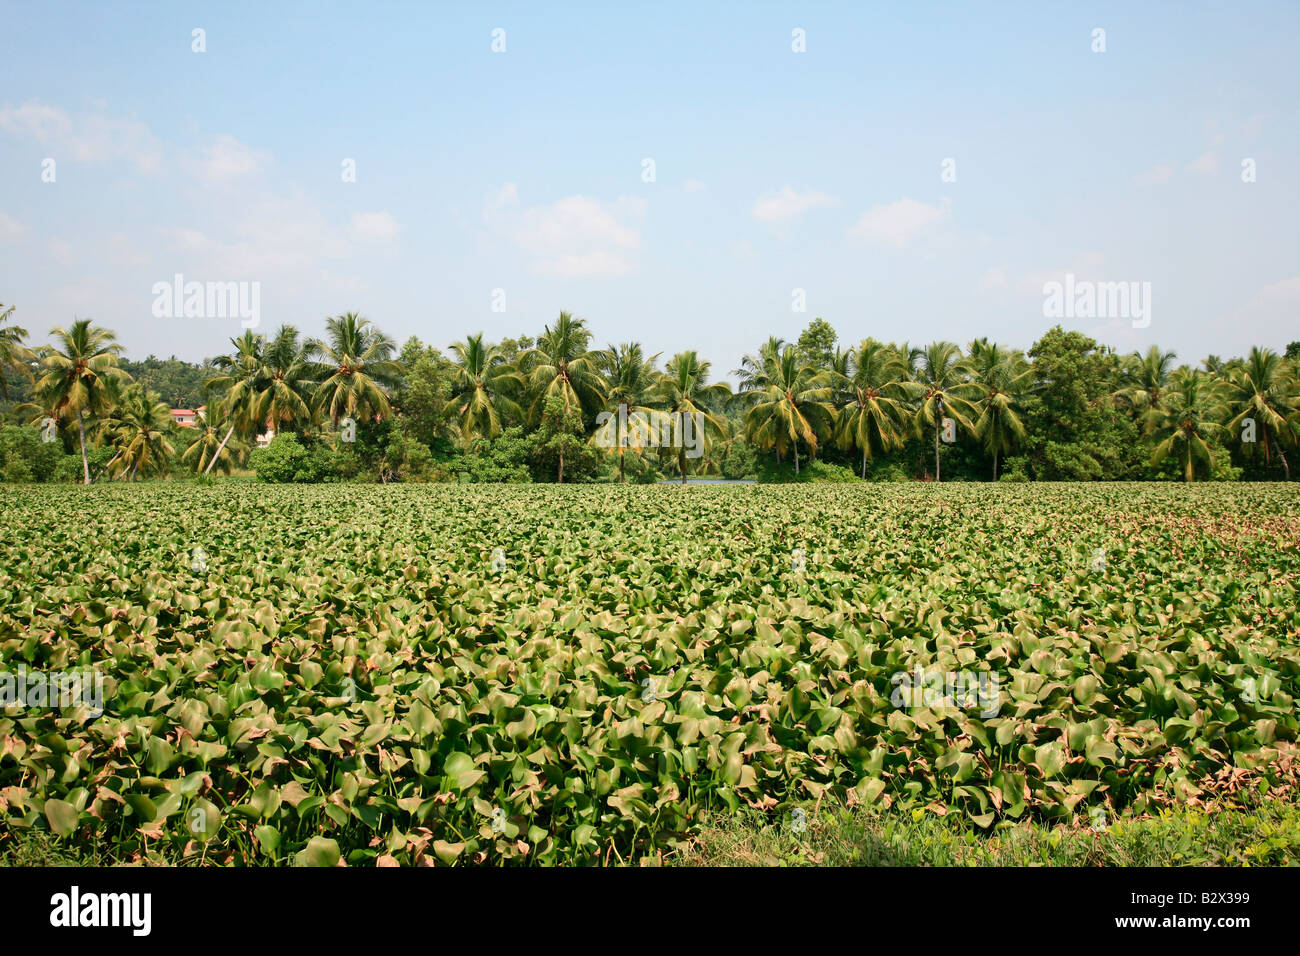 Growth of weeds in Kerala back water - Stock Image